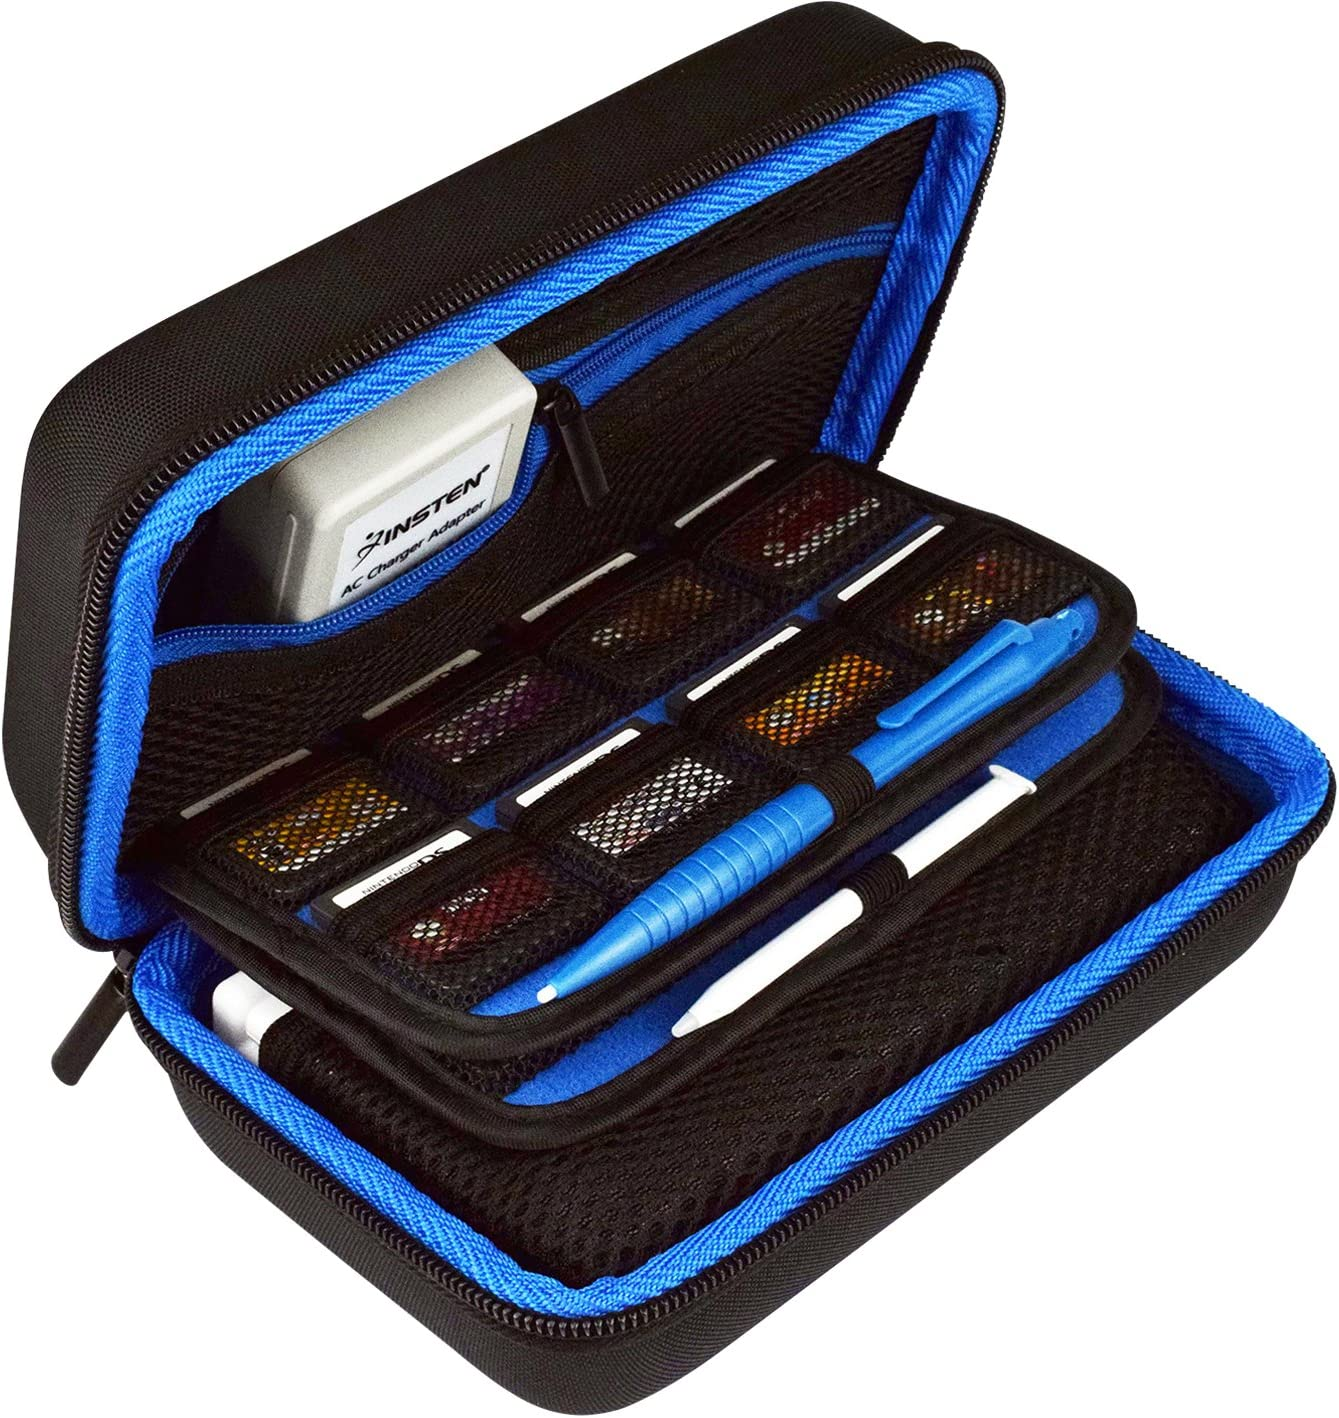 TAKECASE New 3DS XL and 2DS XL Carrying Case - Fits Wall Charger - Includes XL Stylus, 16 Game Storage, Hard Shell and Accessories Pocket (Dark Blue)